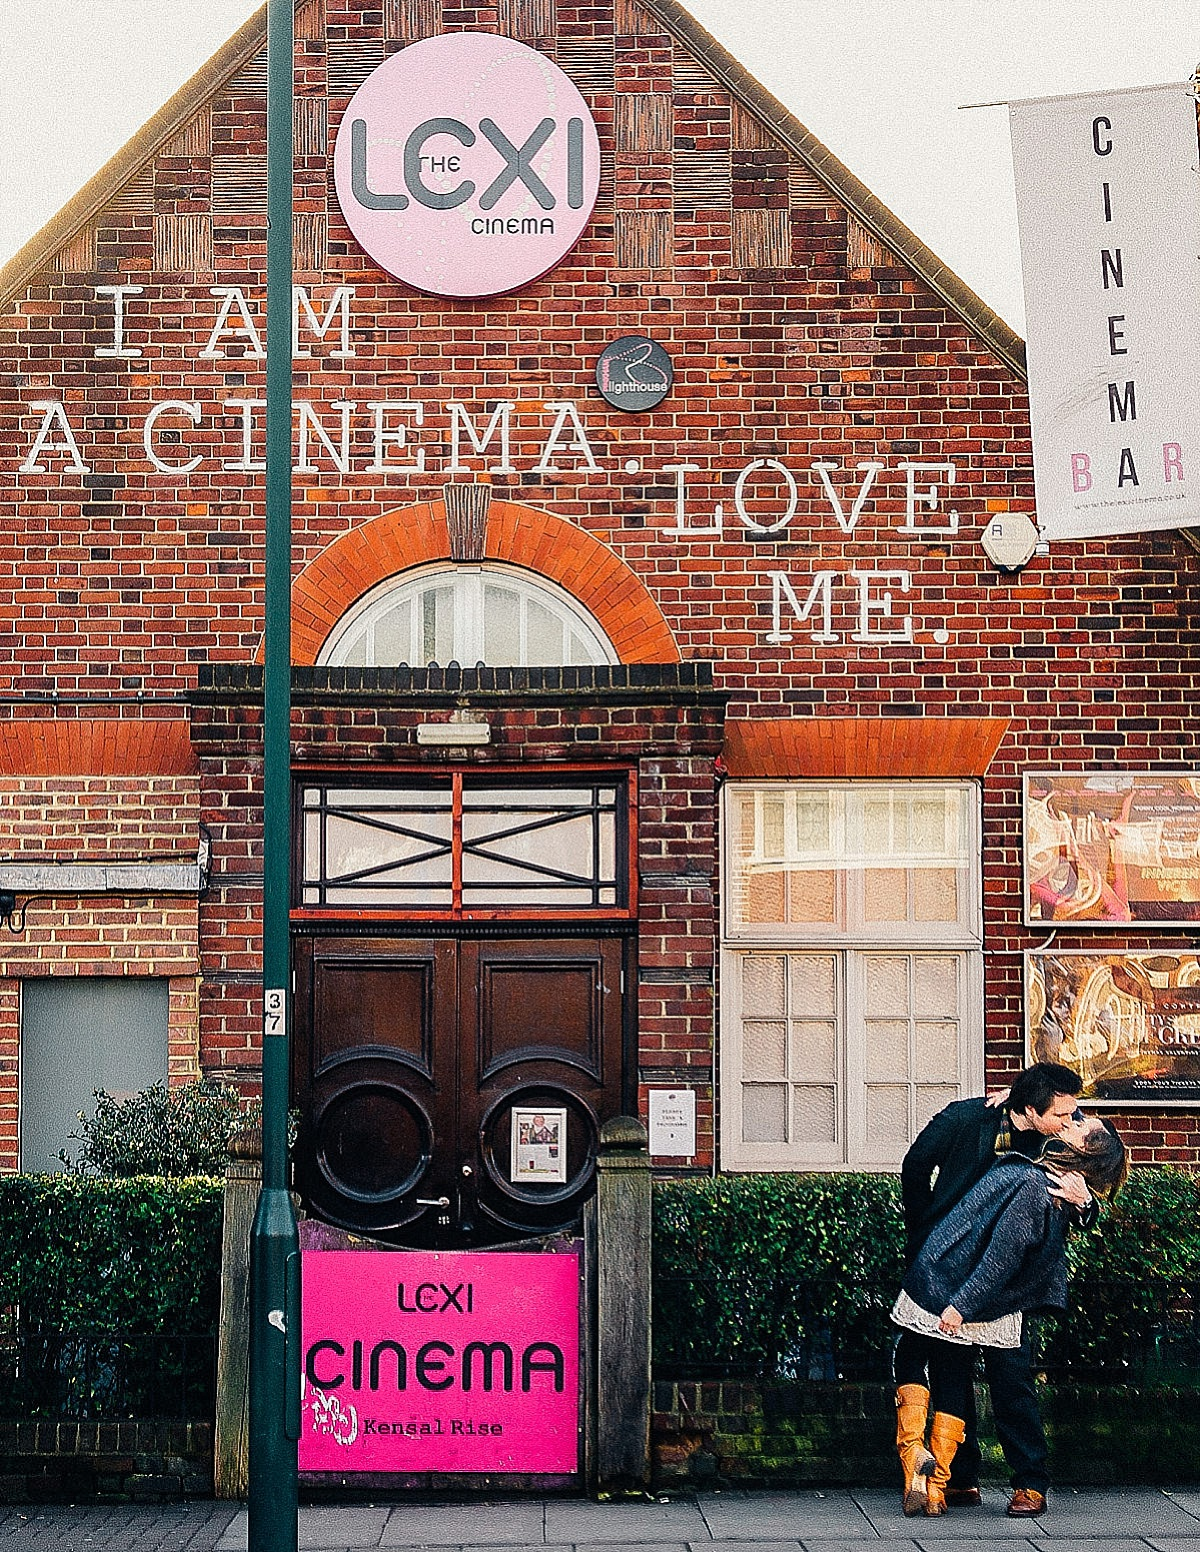 West London wedding venues The Lexi cinema couple embrace